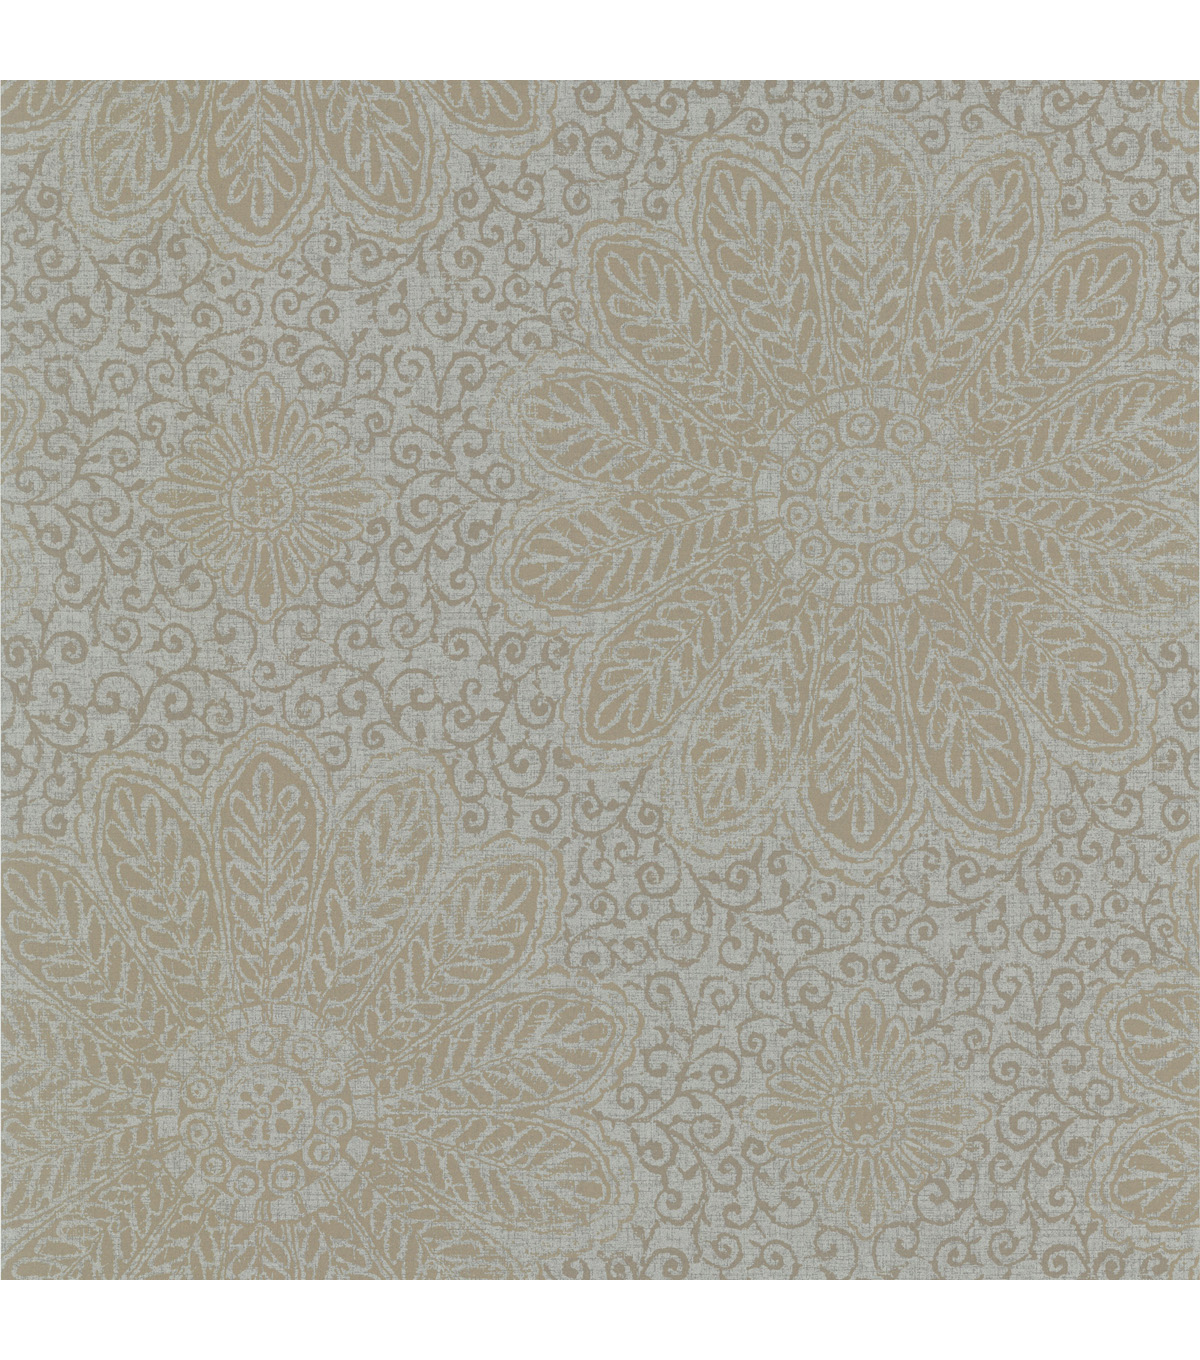 Tribe Grey Modern Floral Scroll Wallpaper